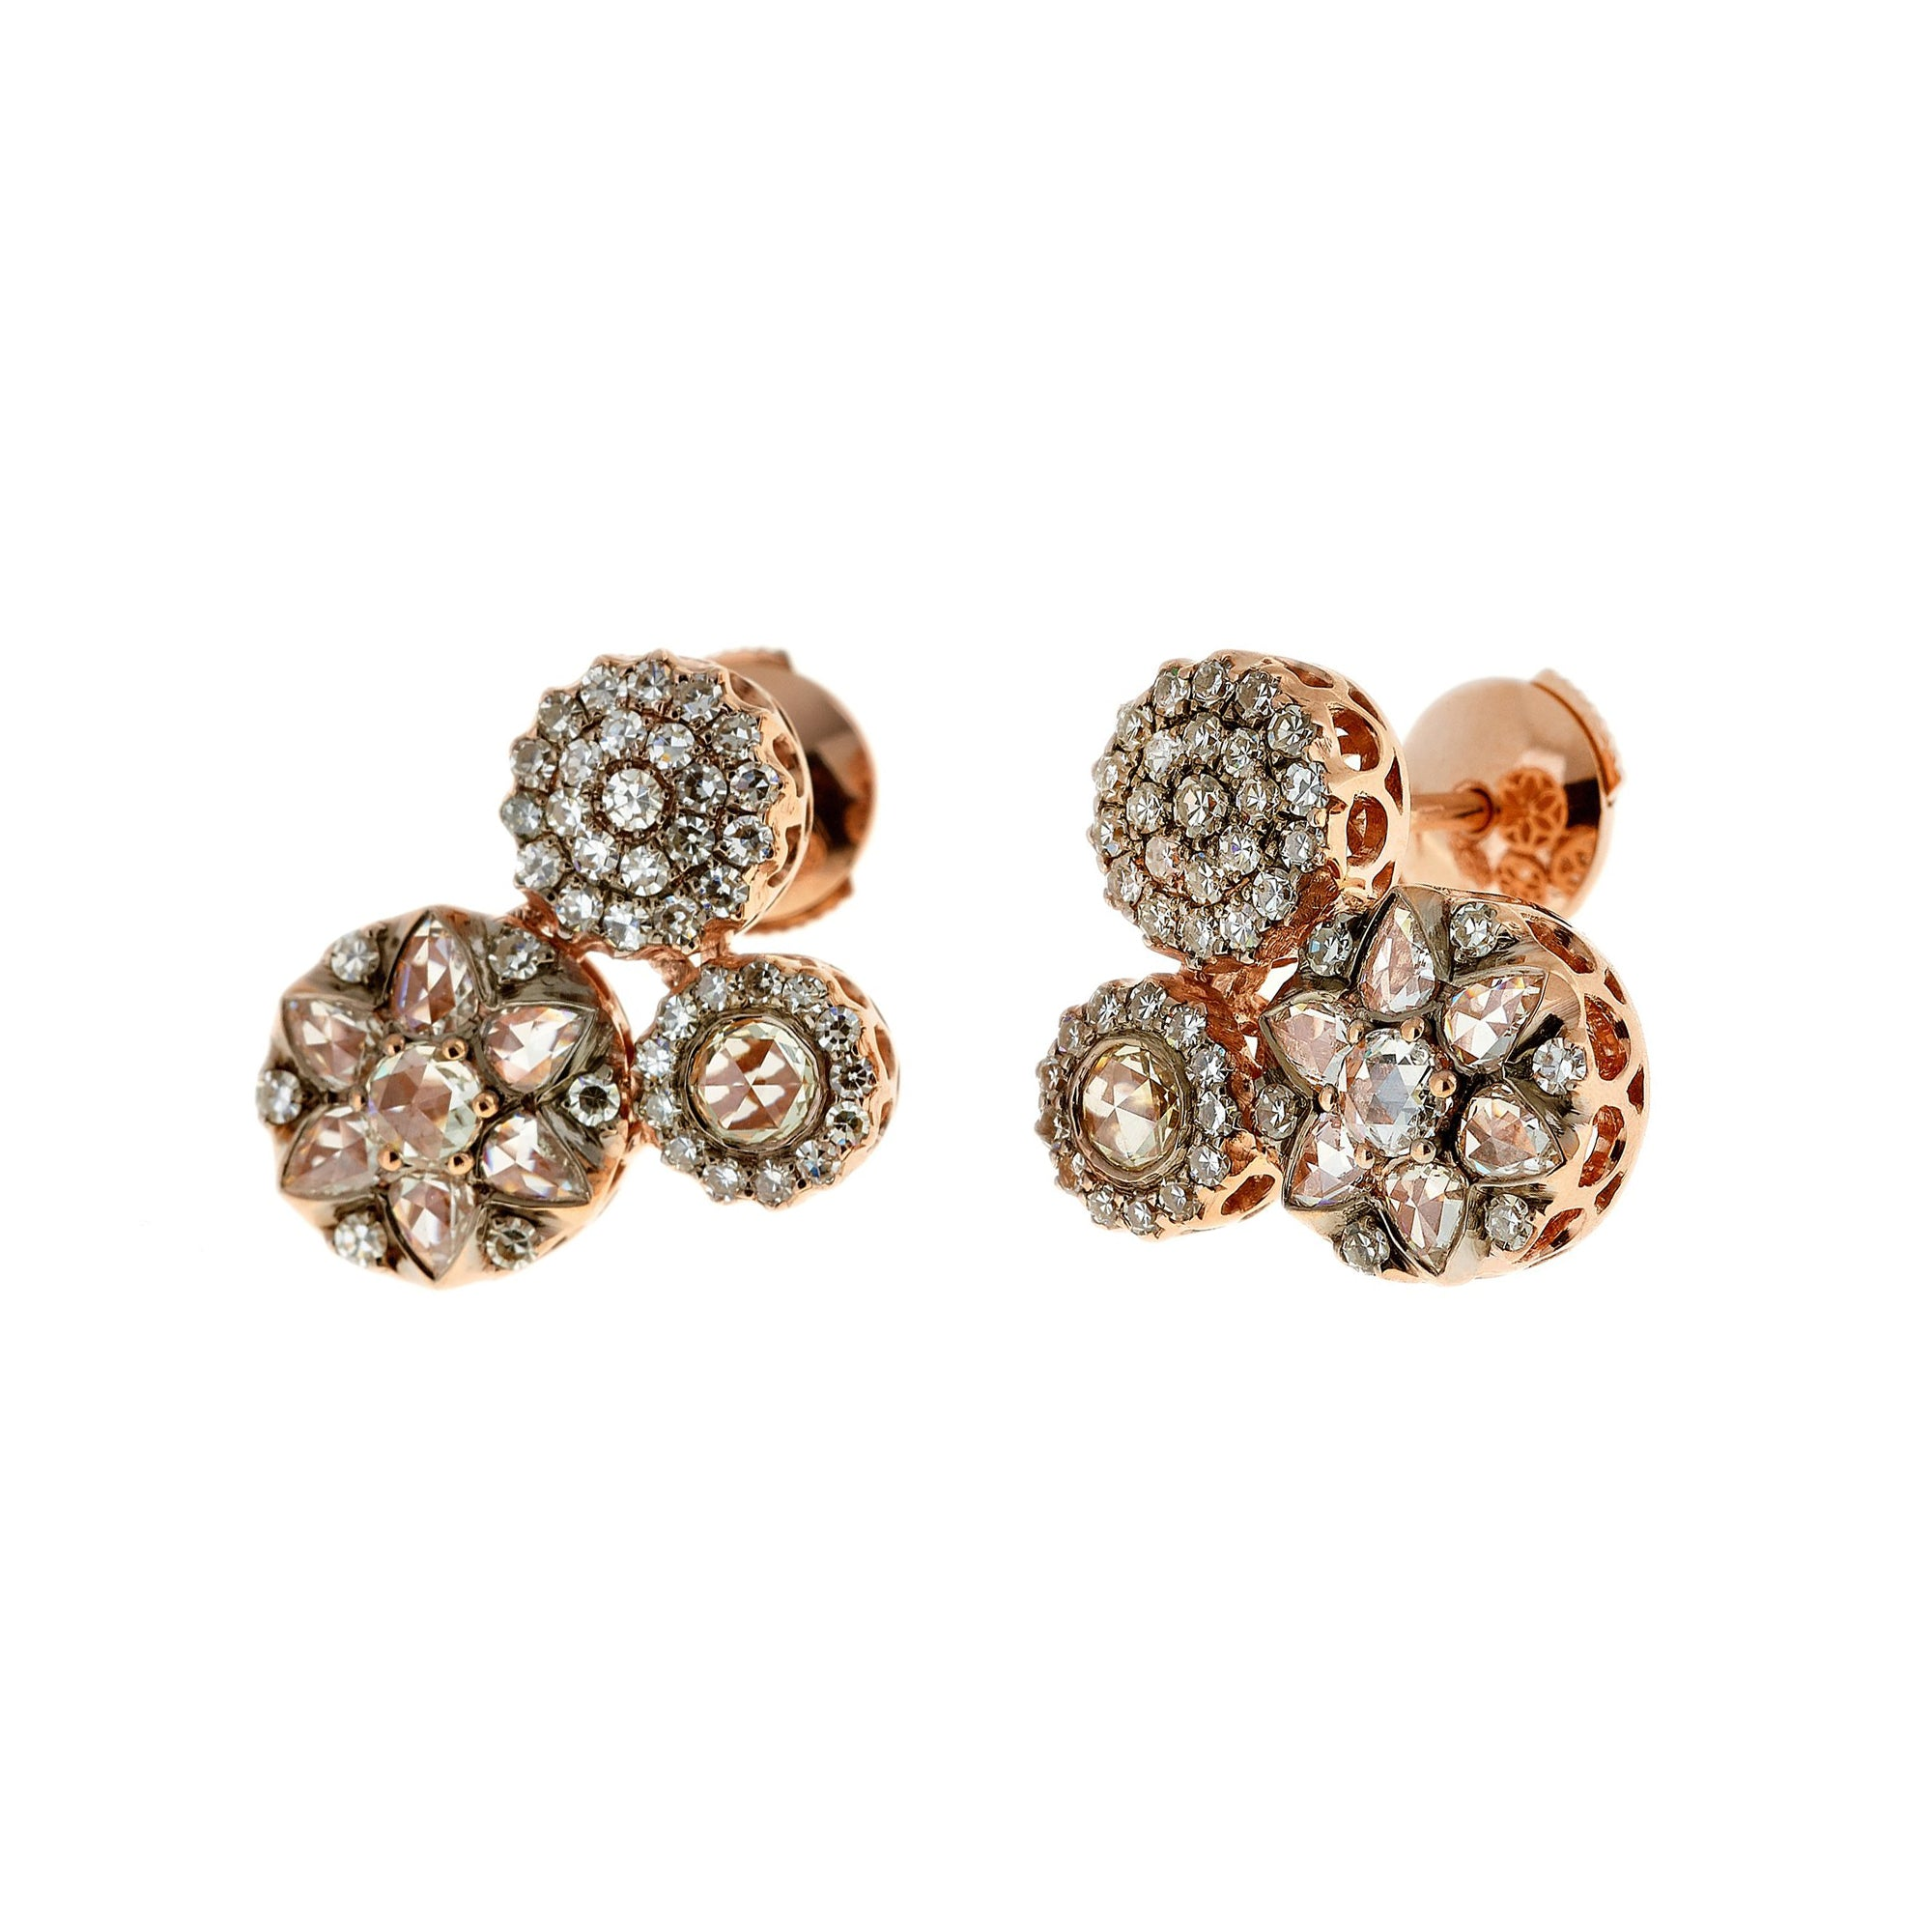 Multi-Diamond Earrings by Selim Mouzannar for Broken English Jewelry